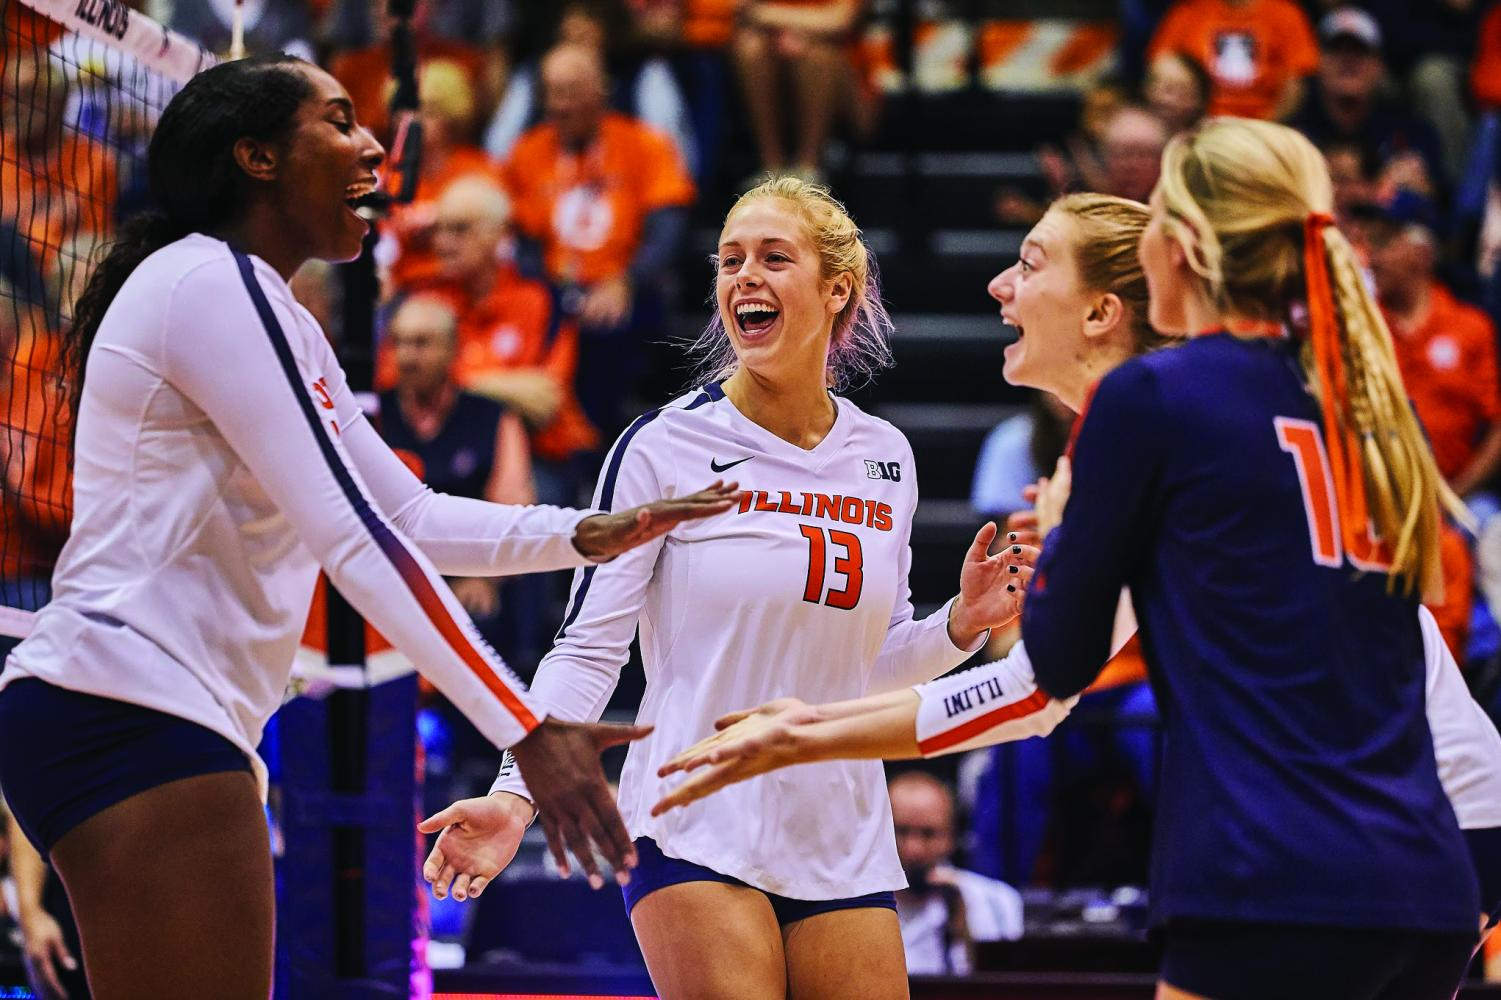 Mica Allison (13) celebrates with the Illini volleyball team after scoring a point at Huff Hall against Indiana on Saturday. Allison, who transferred from Auburn University this season, brings a variety of position experience to the table.